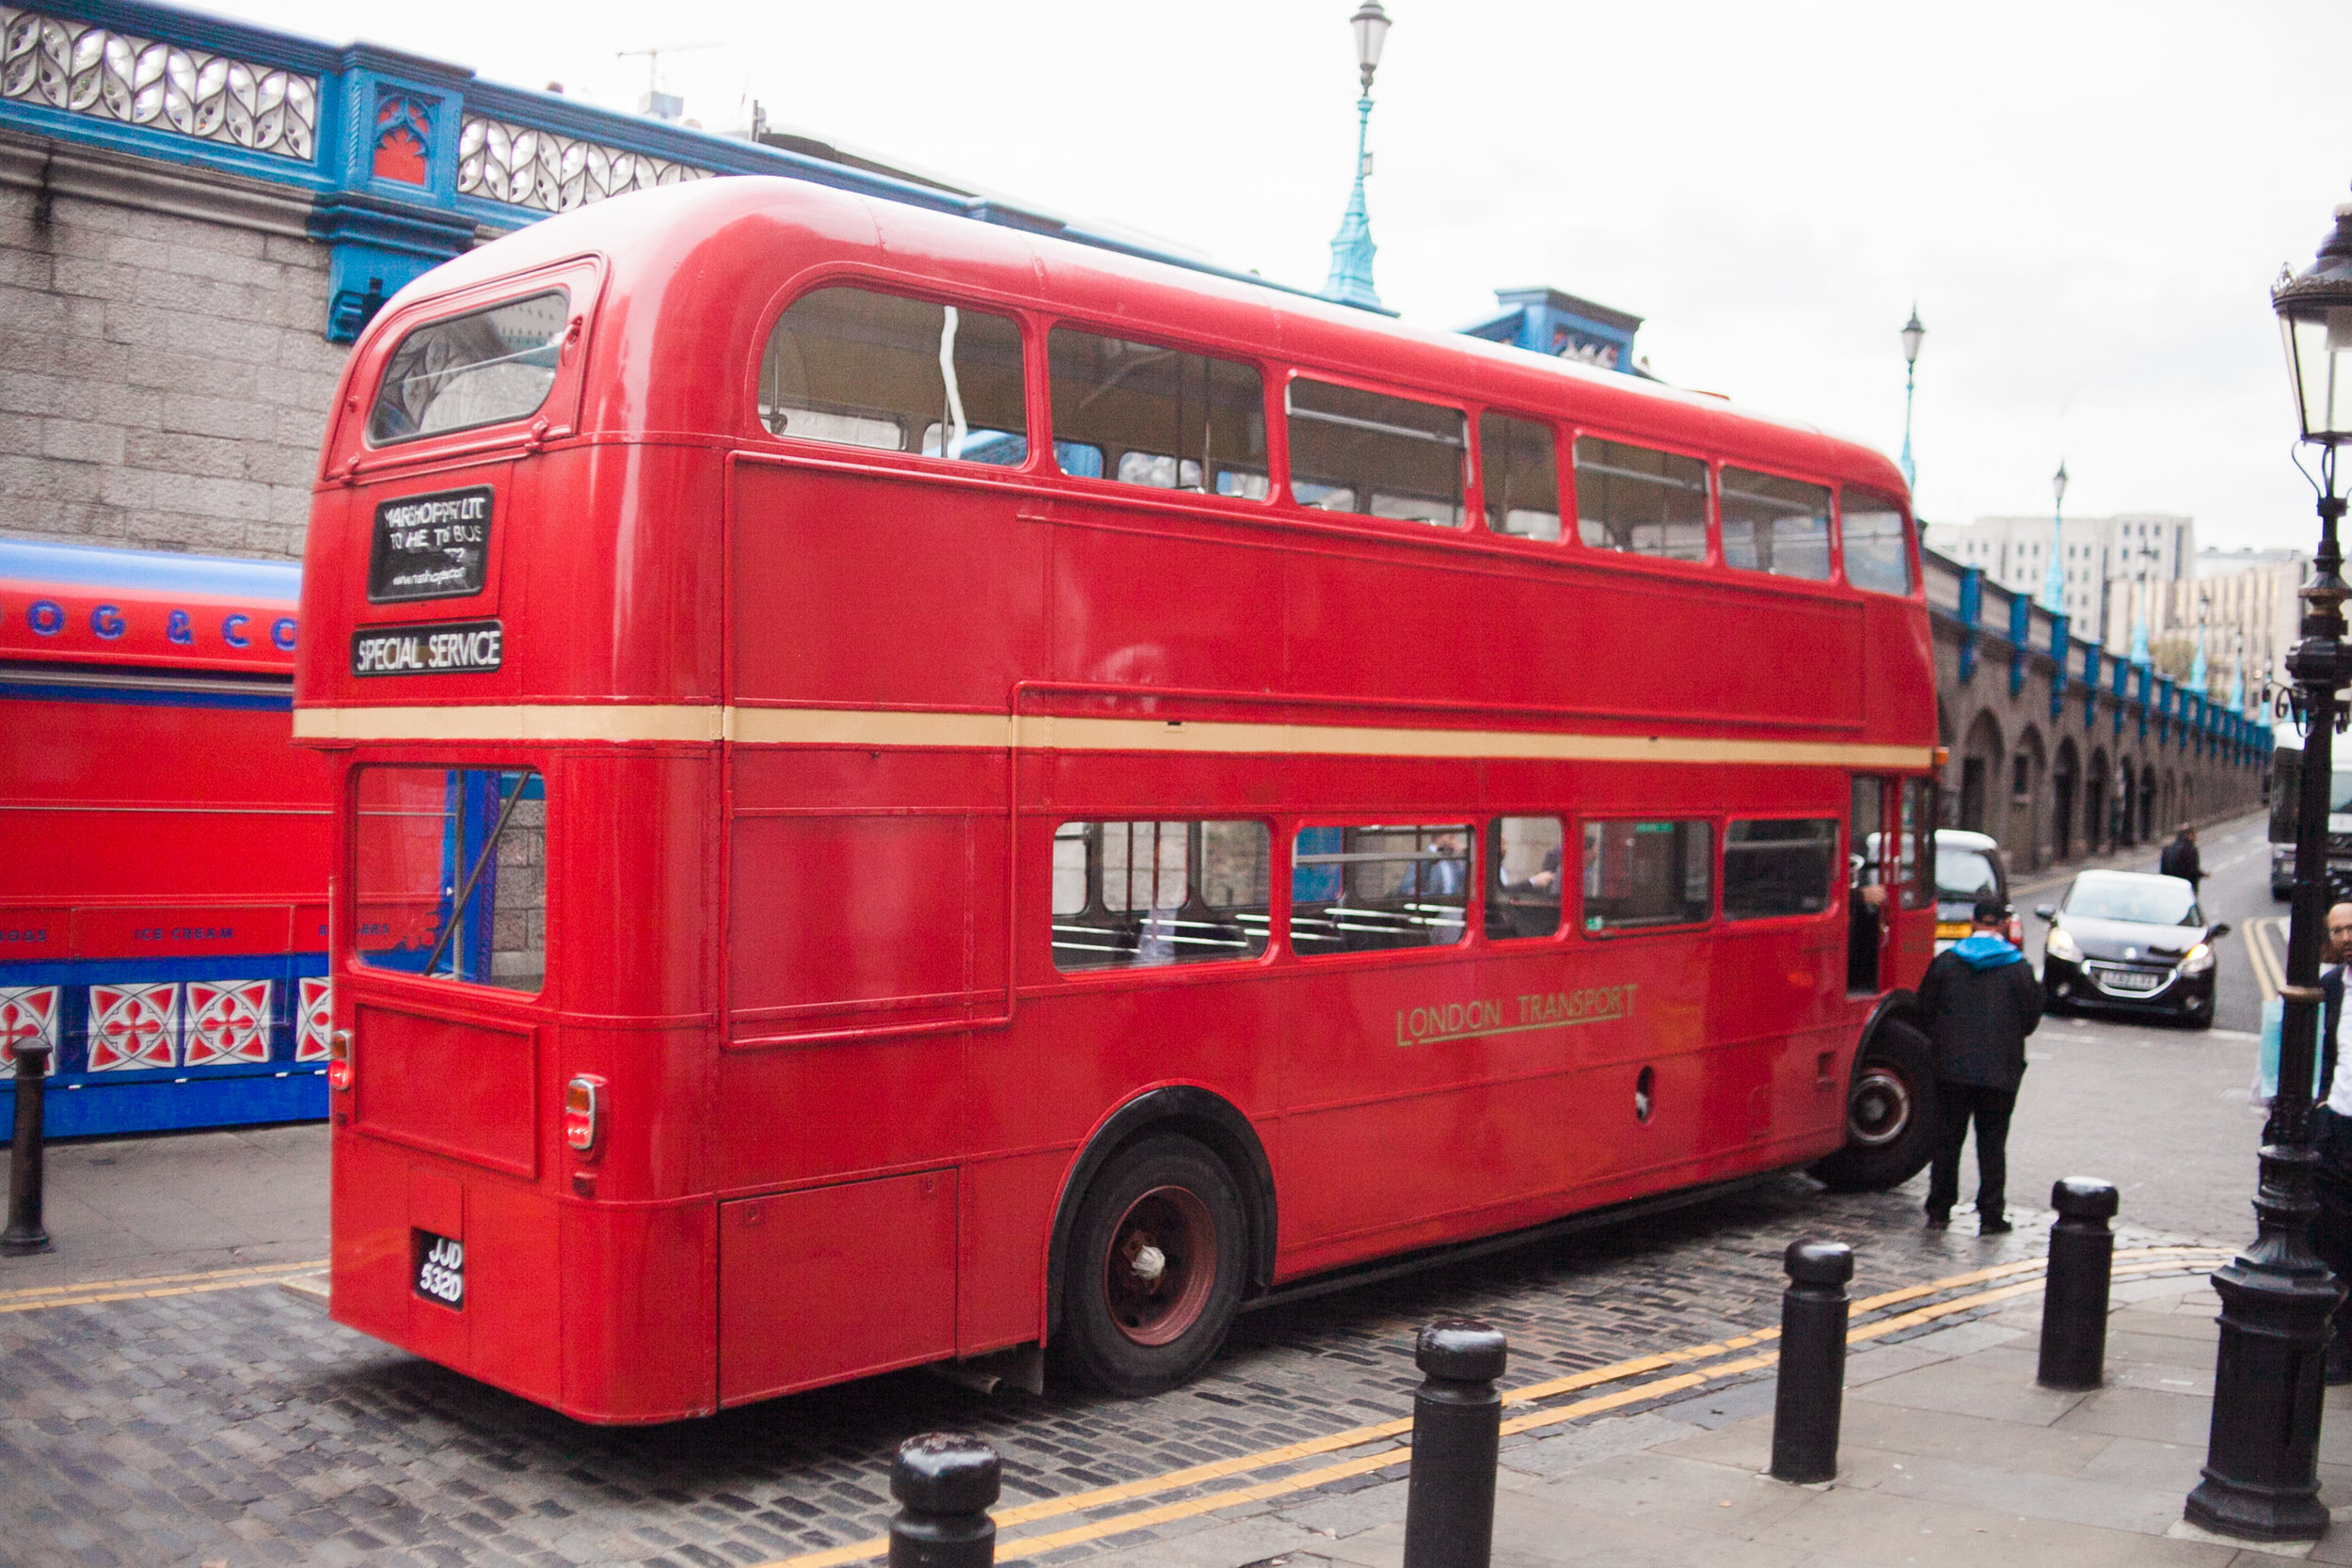 day_two_london (157 of 164).jpg